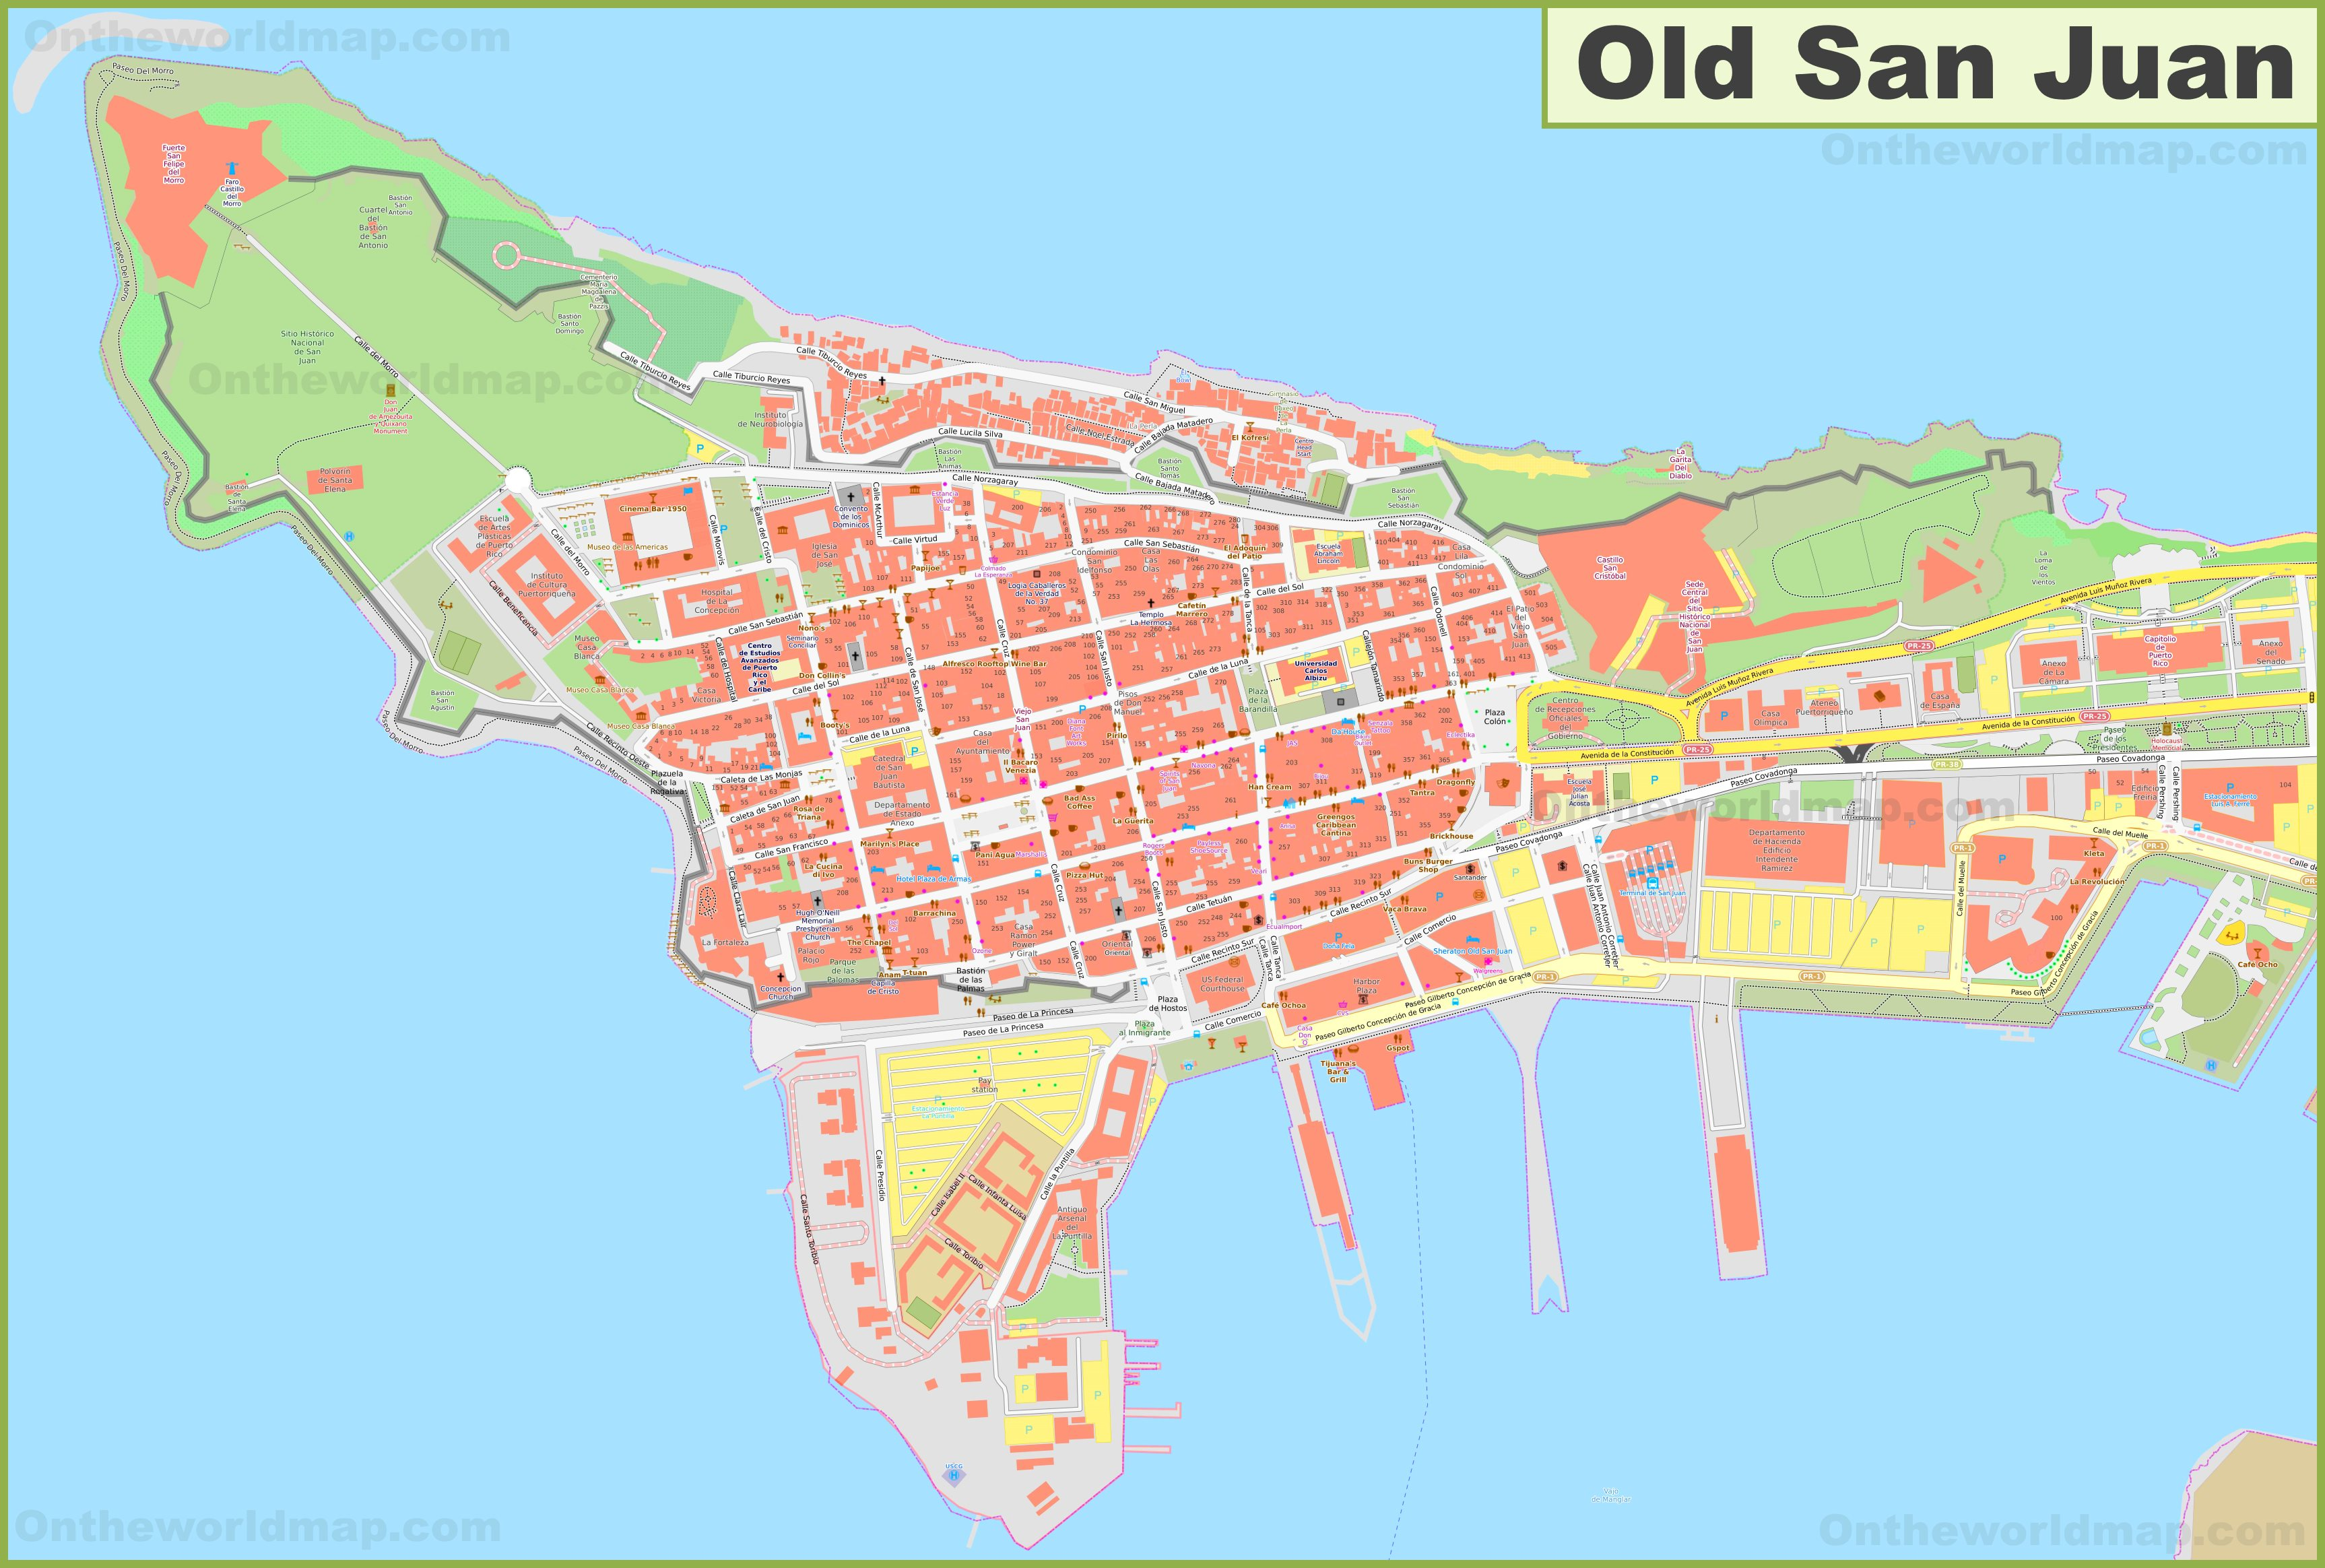 Detailed map of Old San Juan